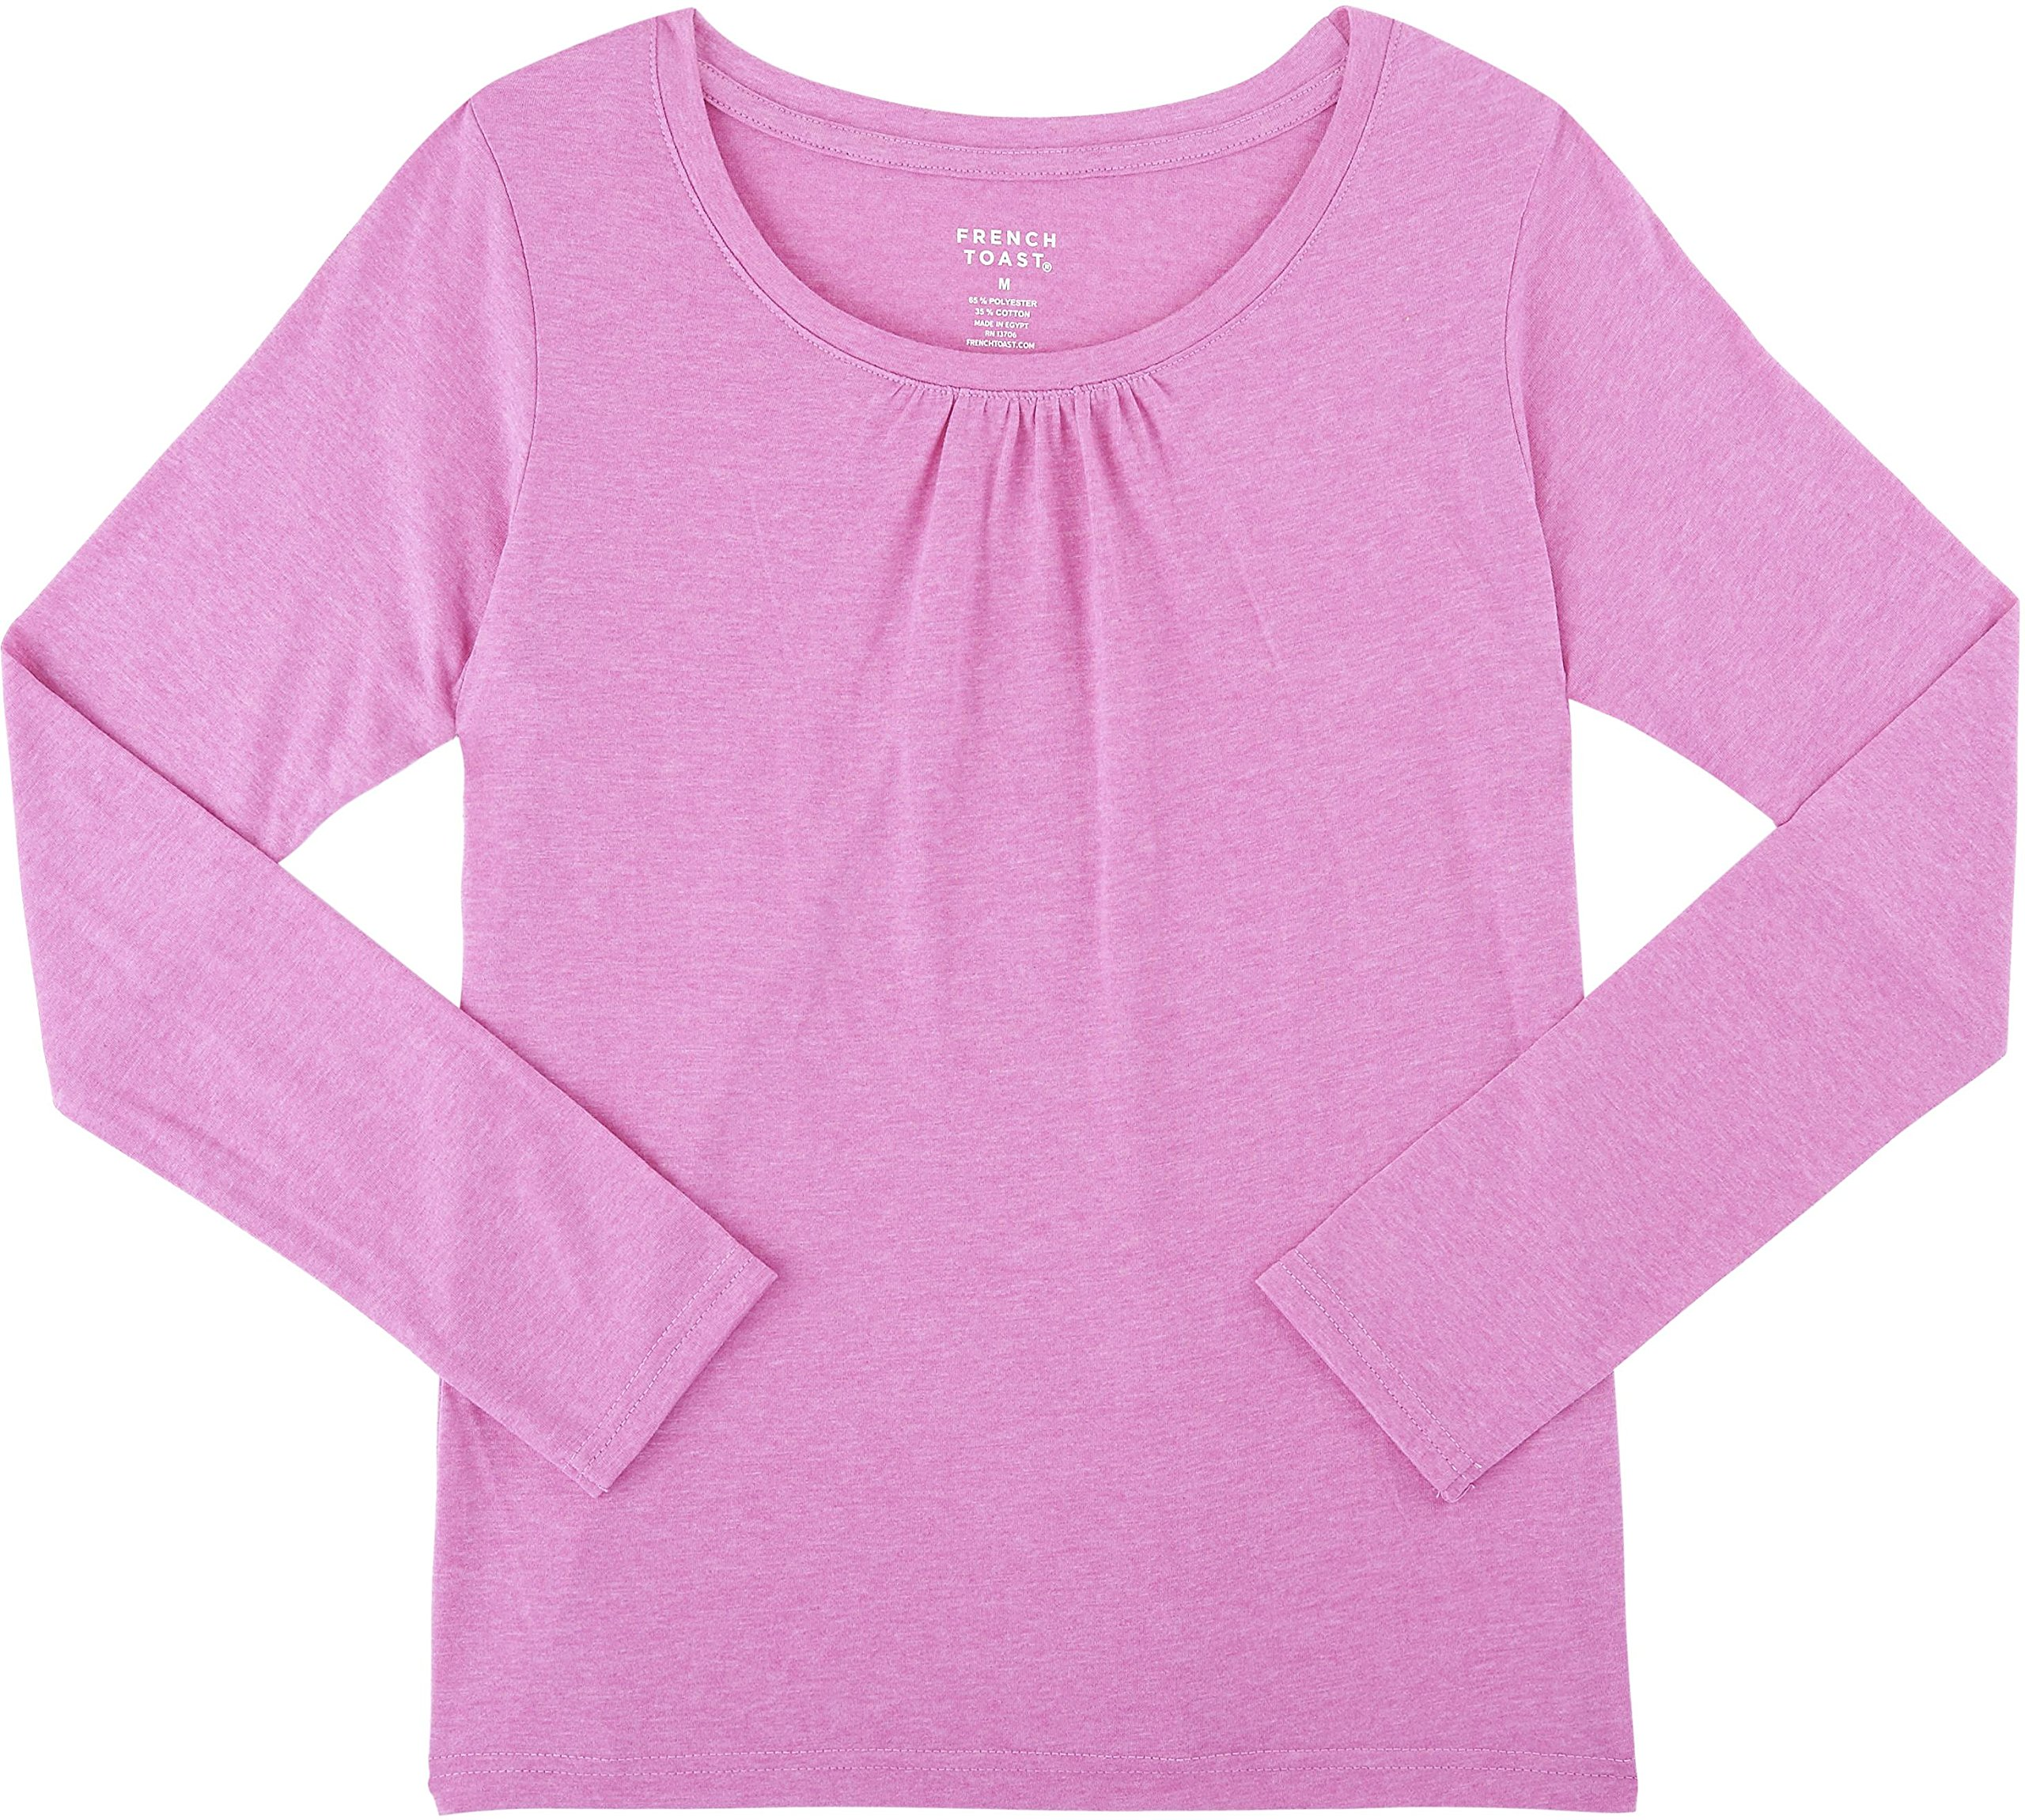 0248b6bdad7 Galleon - French Toast School Uniform Girls Long Sleeve Crew Neck T-Shirt  With Front Gathers